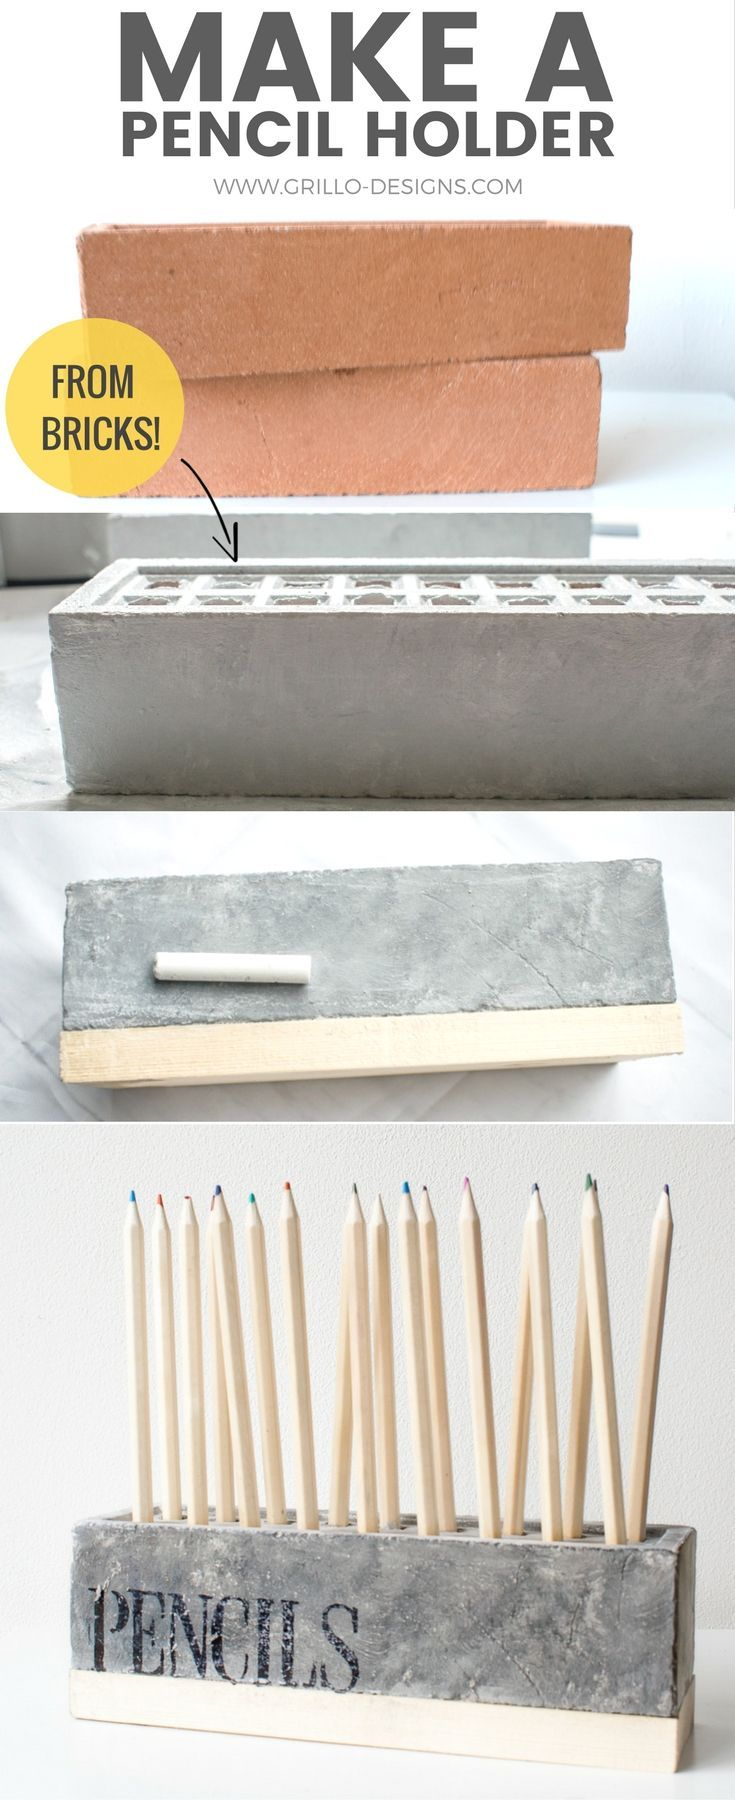 diy pencil holder from bricks